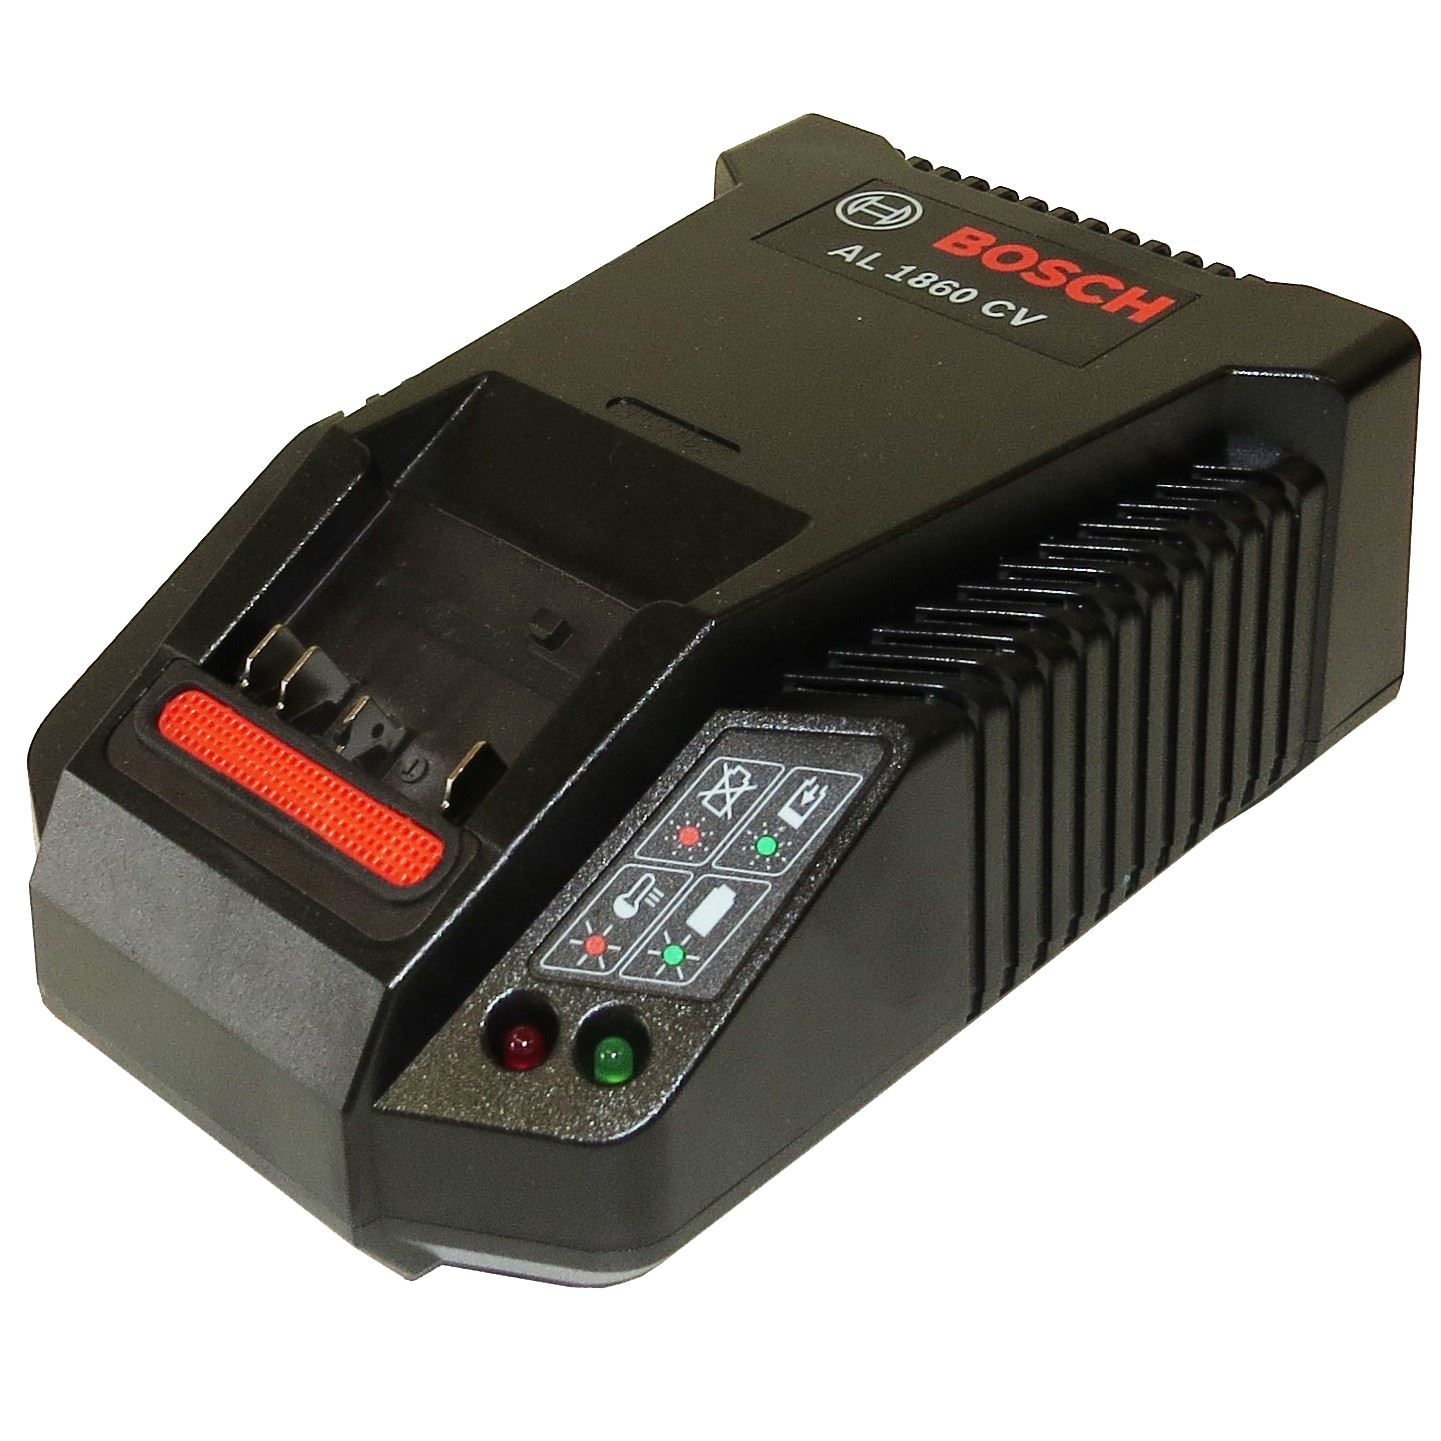 bosch al1860cv 10 8v 18v li ion battery charger ebay. Black Bedroom Furniture Sets. Home Design Ideas